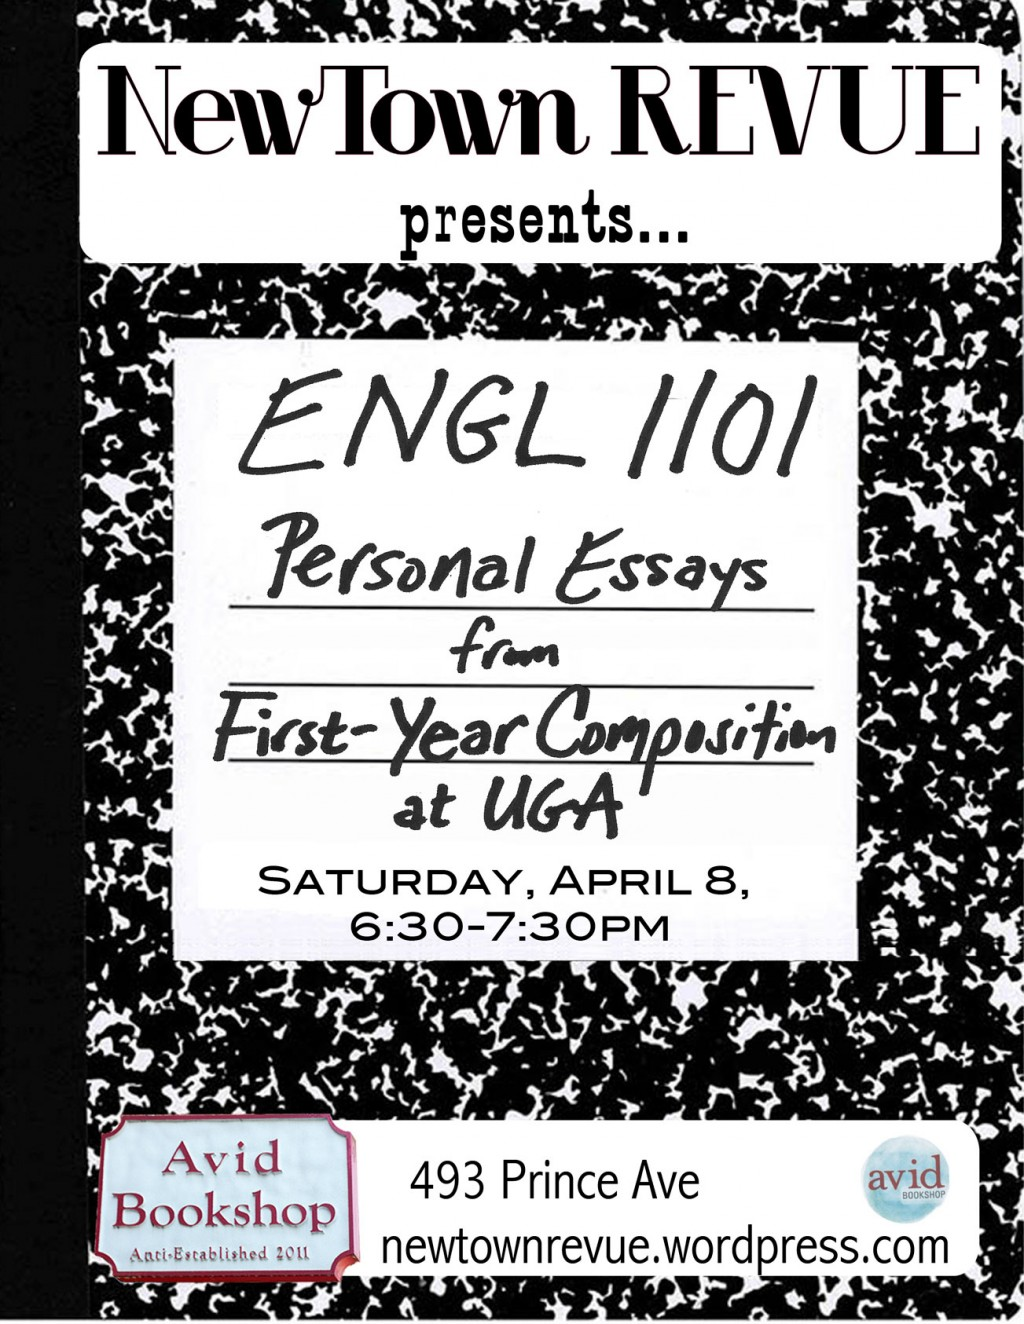 026 Uga Essays Essay Example Ntr April Surprising That Worked Early Application Sample Admissions Large